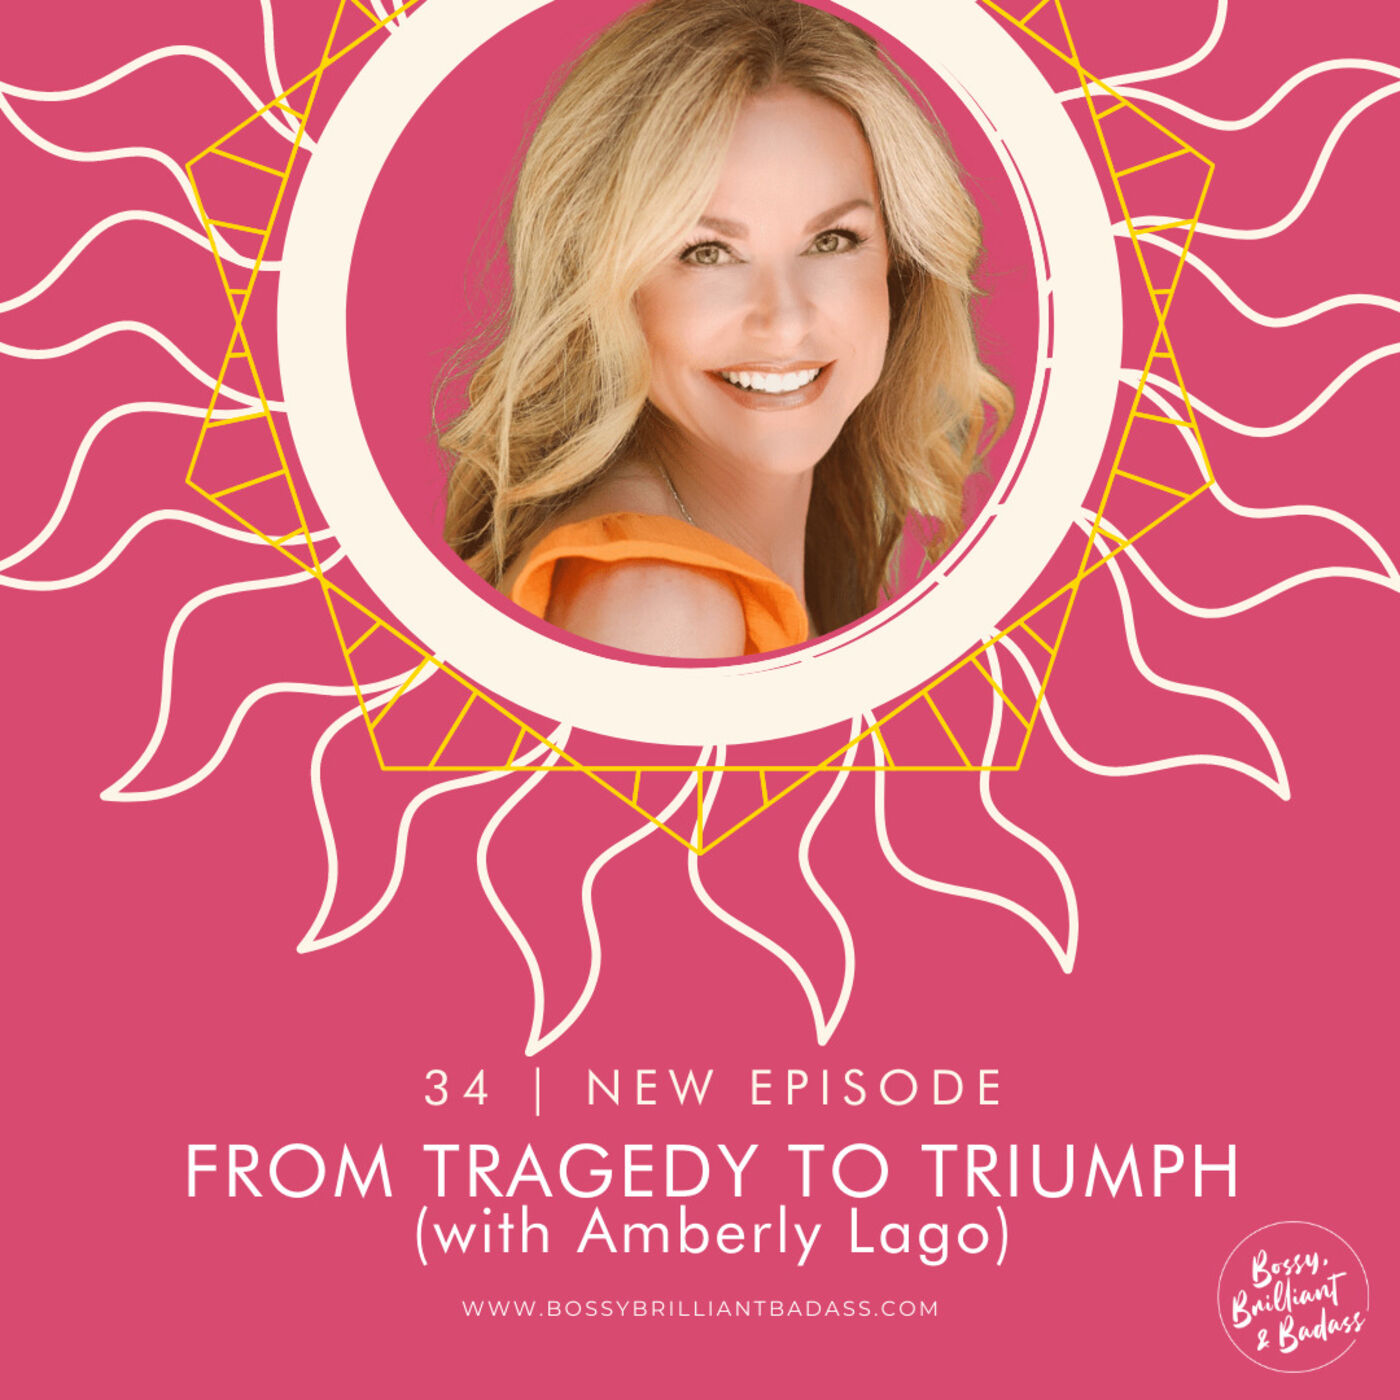 From Tragedy to Triumph (with Amberly Lago)